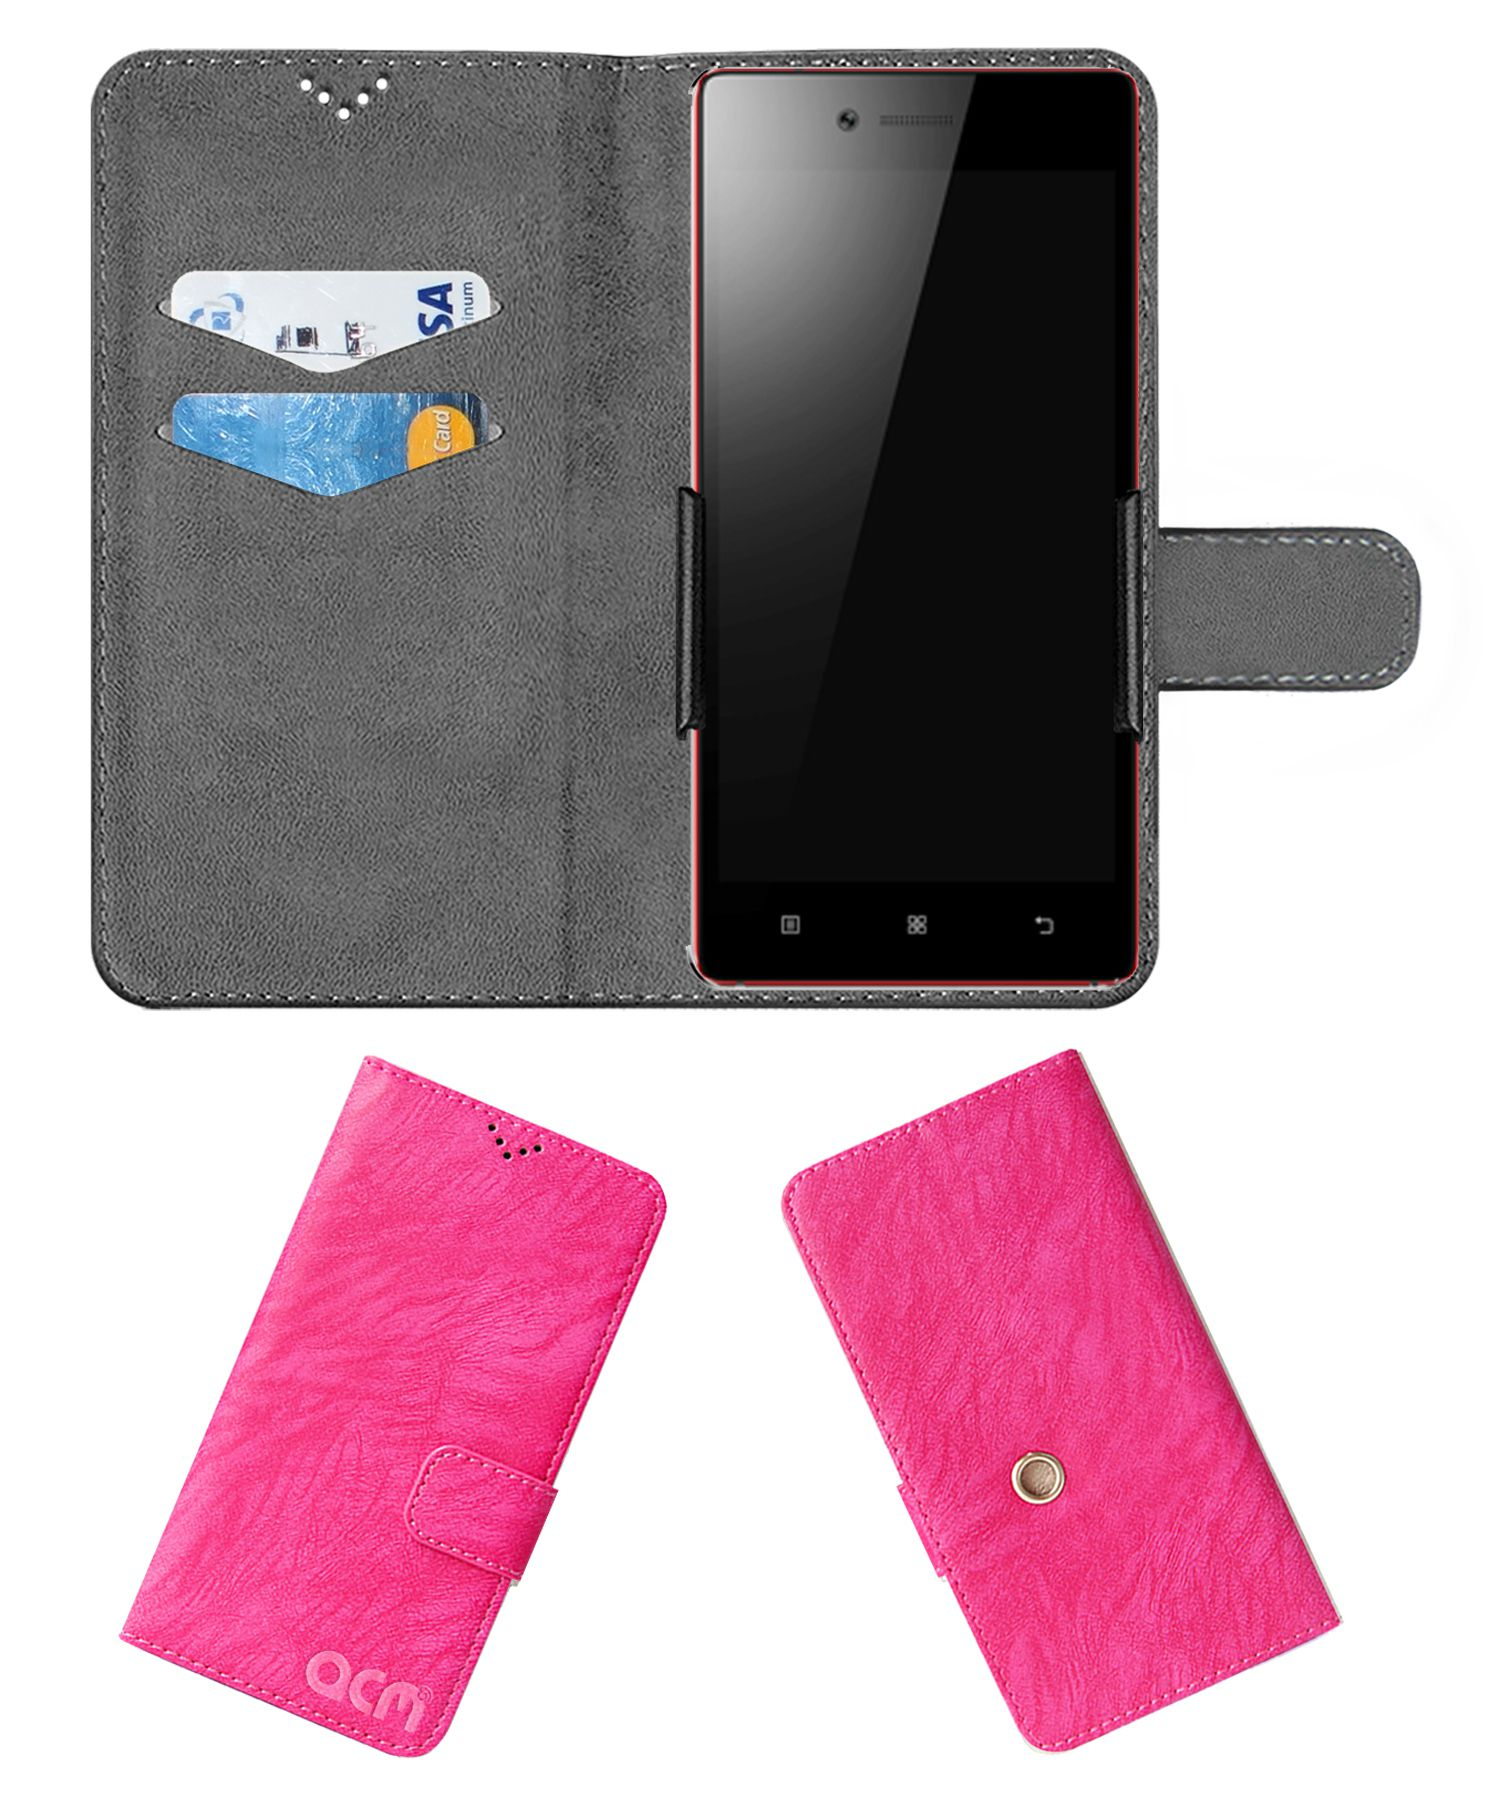 Lenovo Vibe Shot Flip Cover by ACM - Pink Clip holder to hold your mobile securely